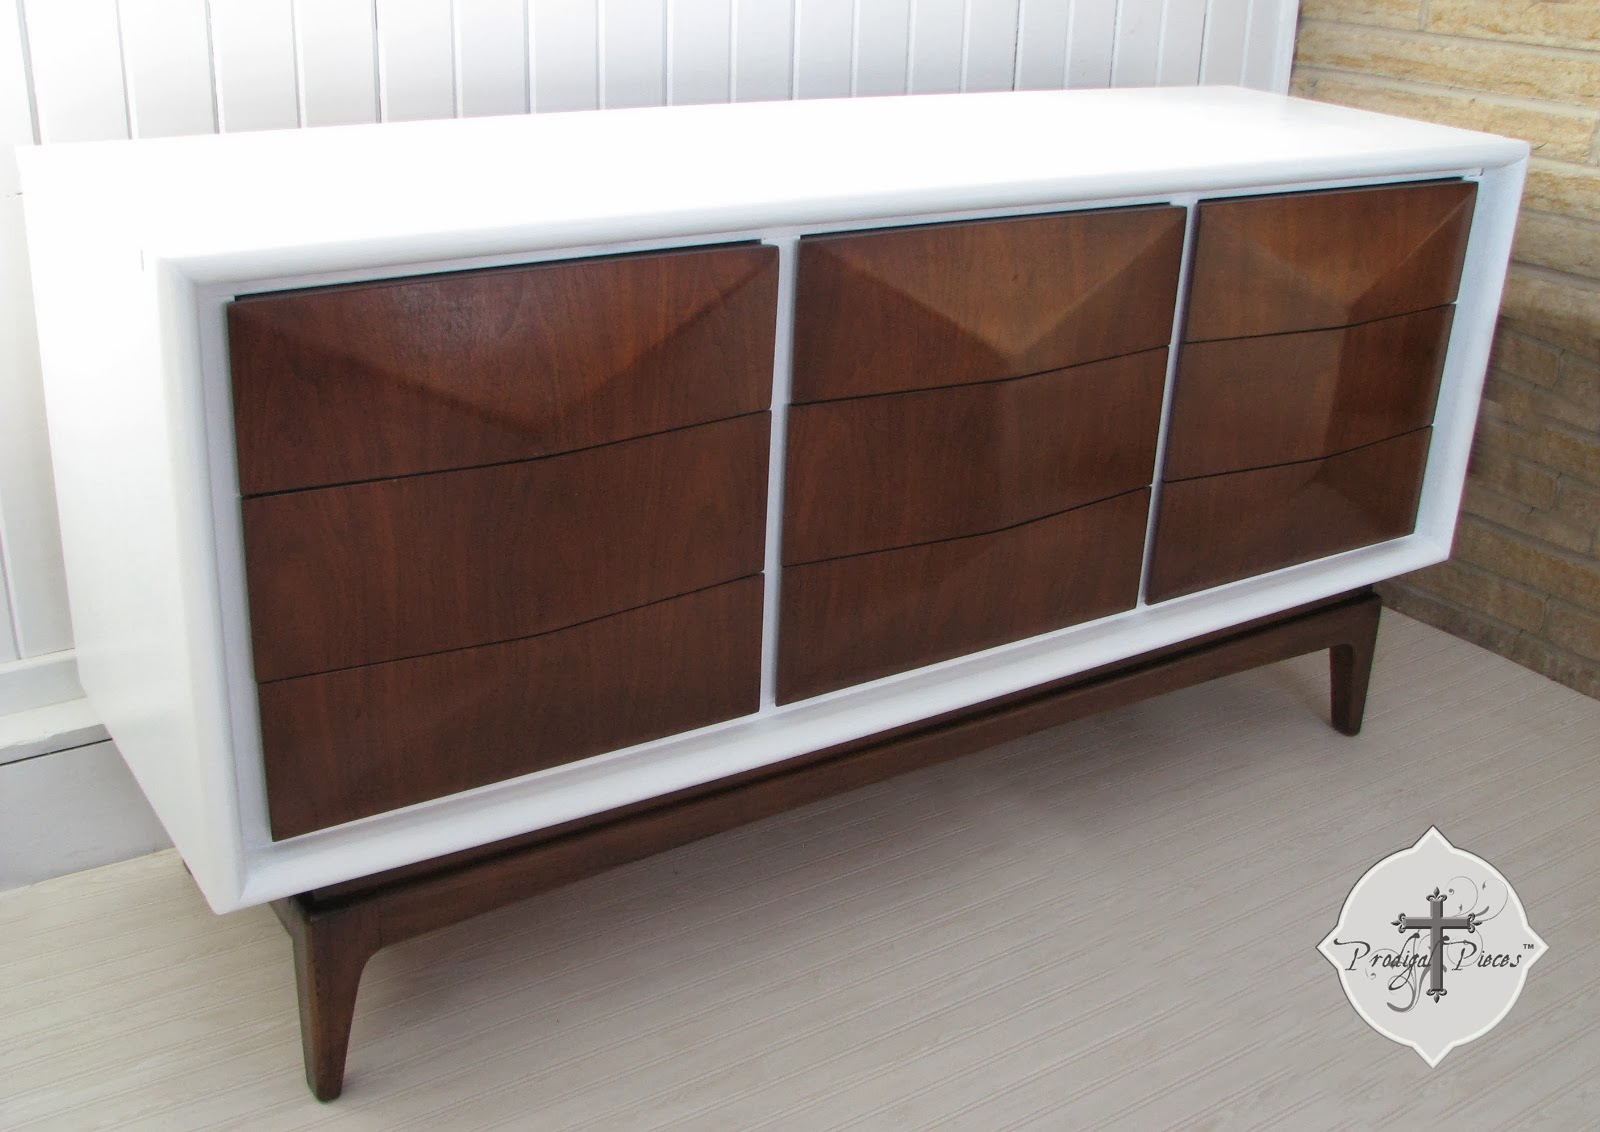 Nice Vintage Mid Century Modern Console Dresser By Prodigal Pieces